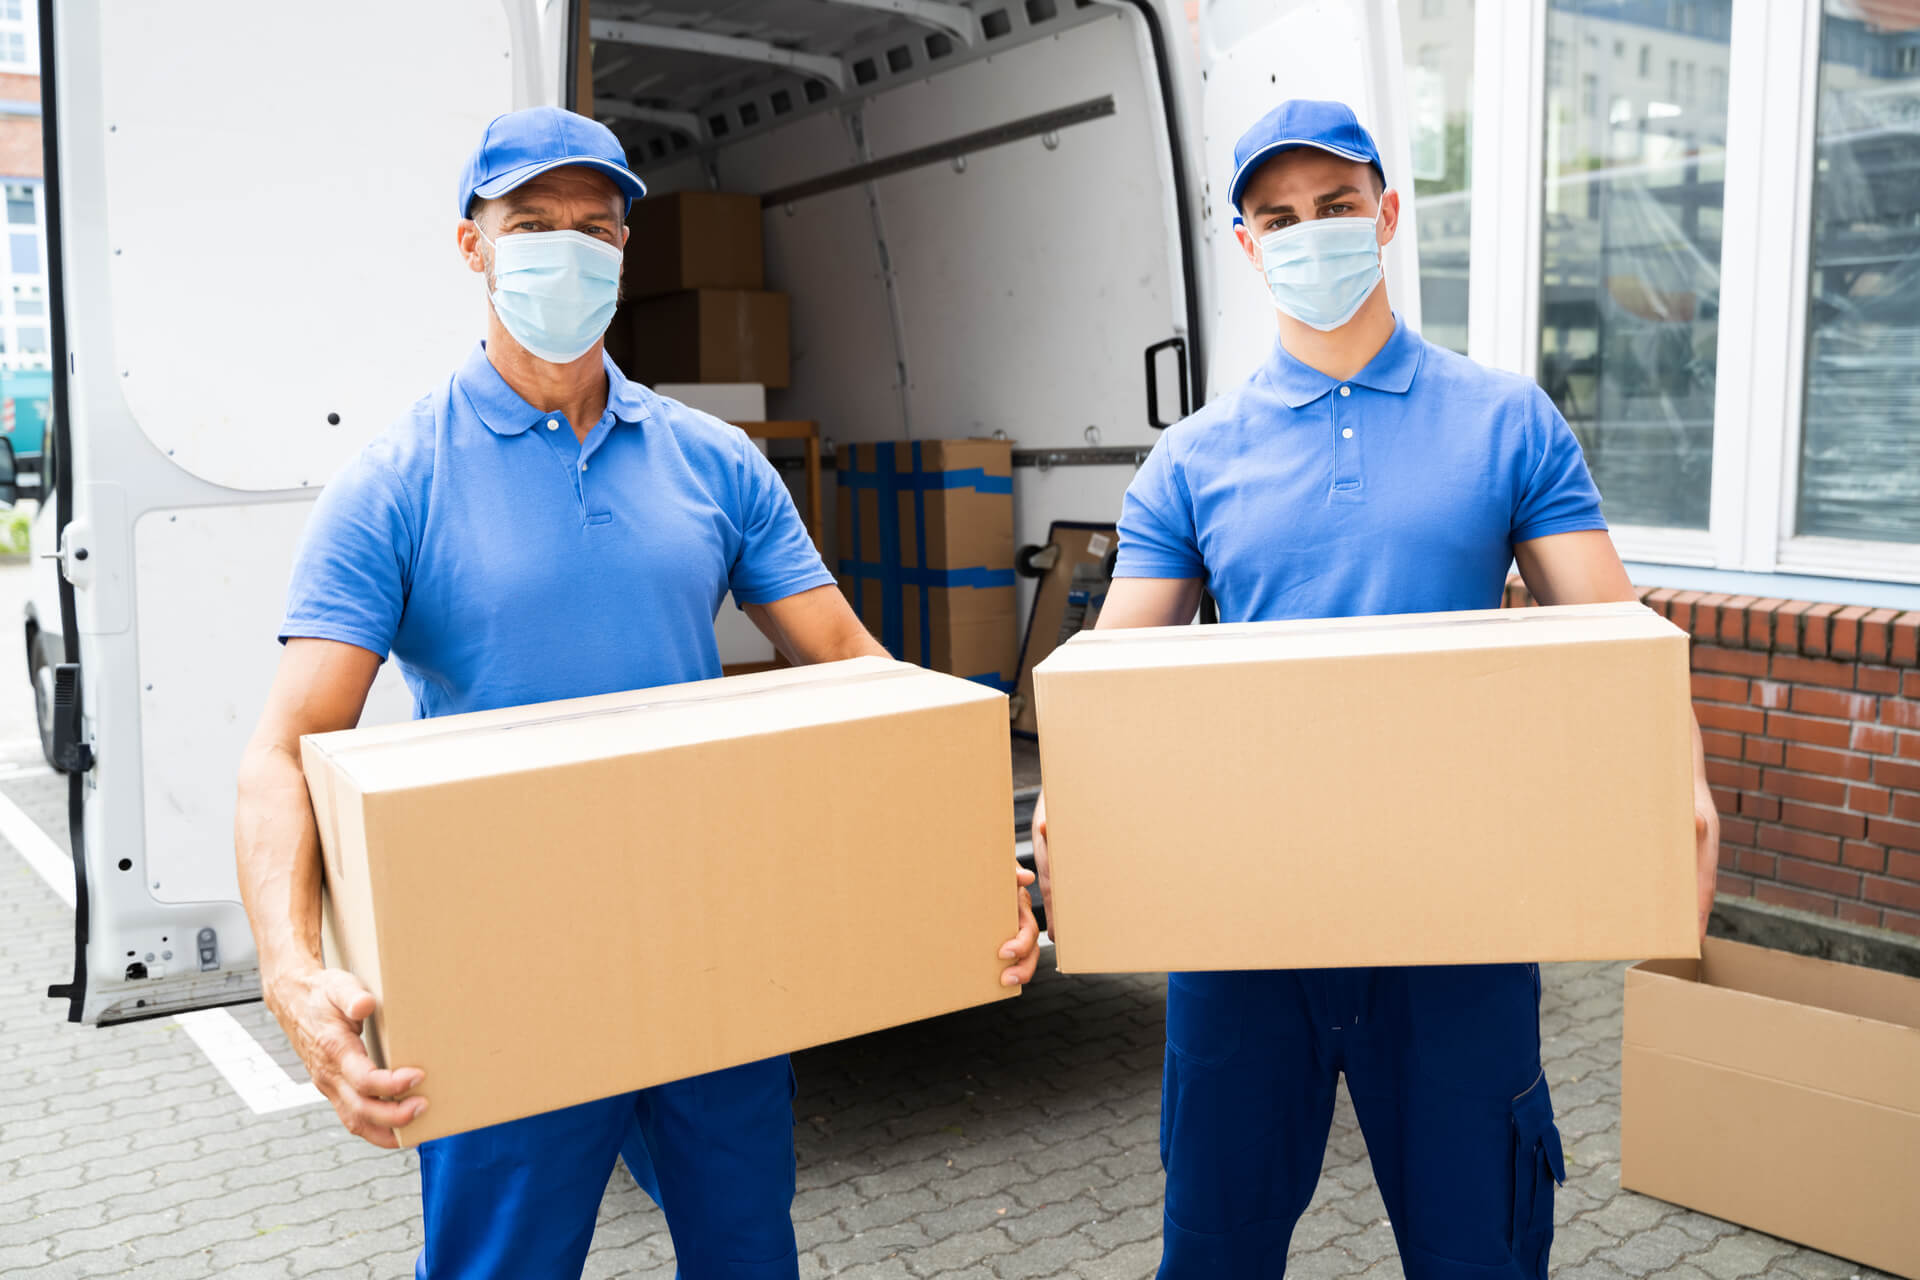 Professional Movers In Dallas Wearing Masks